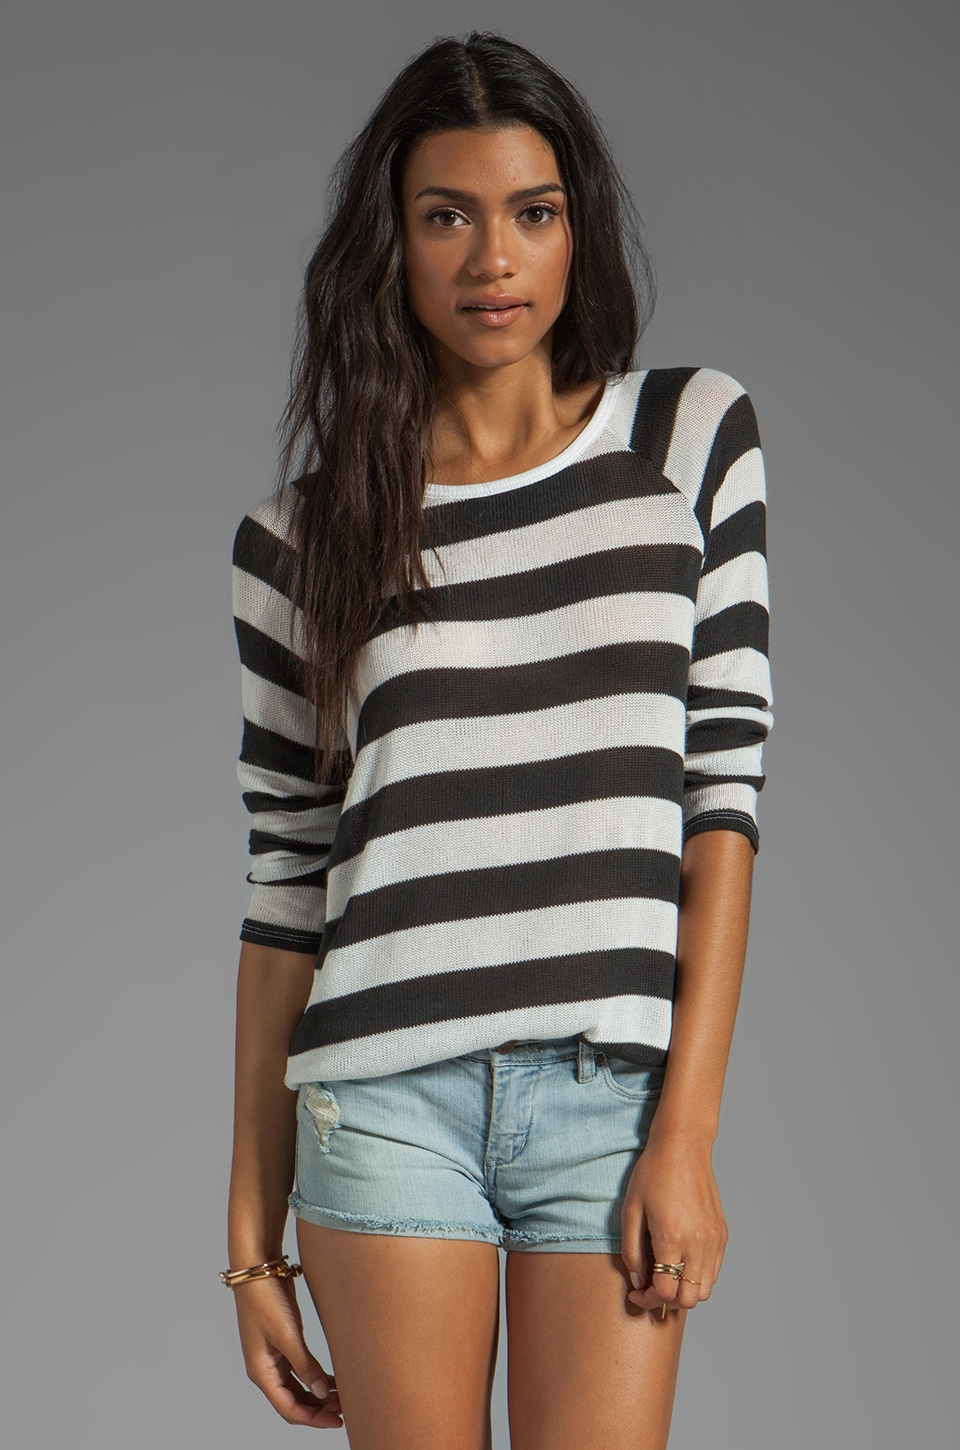 Soft Joie Dayla Stripe Top in Caviar/Porcelain